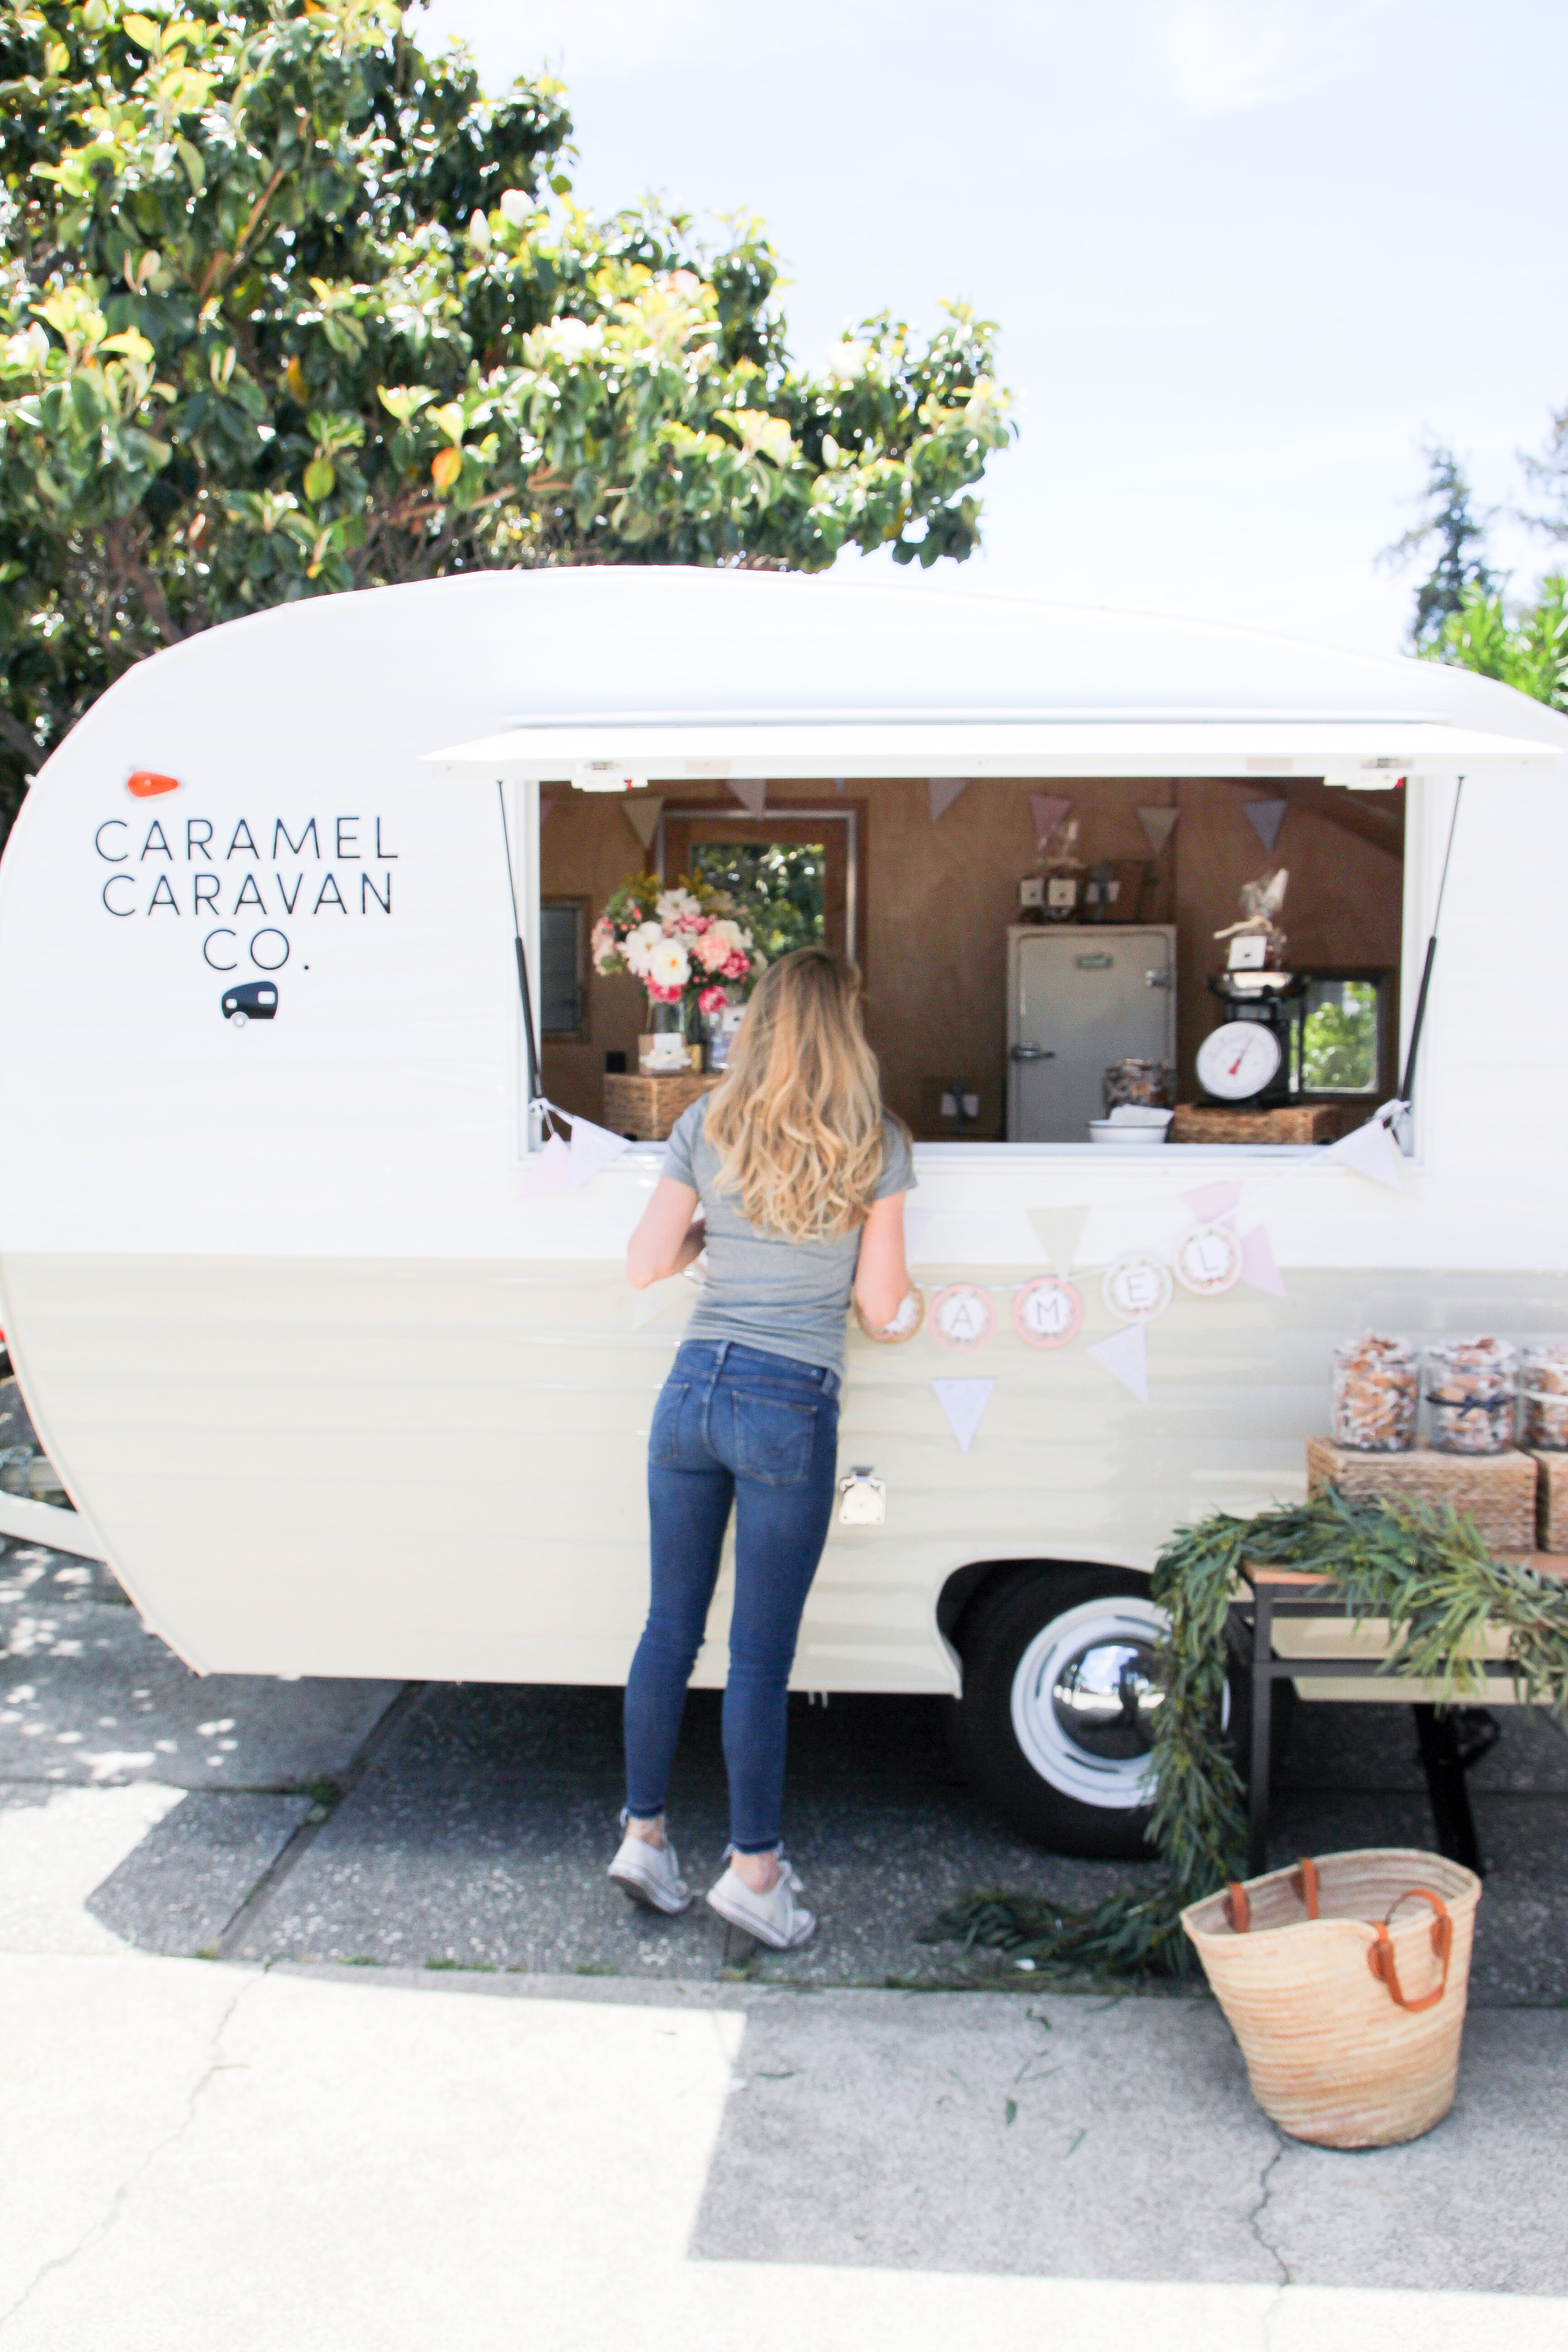 Courtney looking into Caramel Caravan